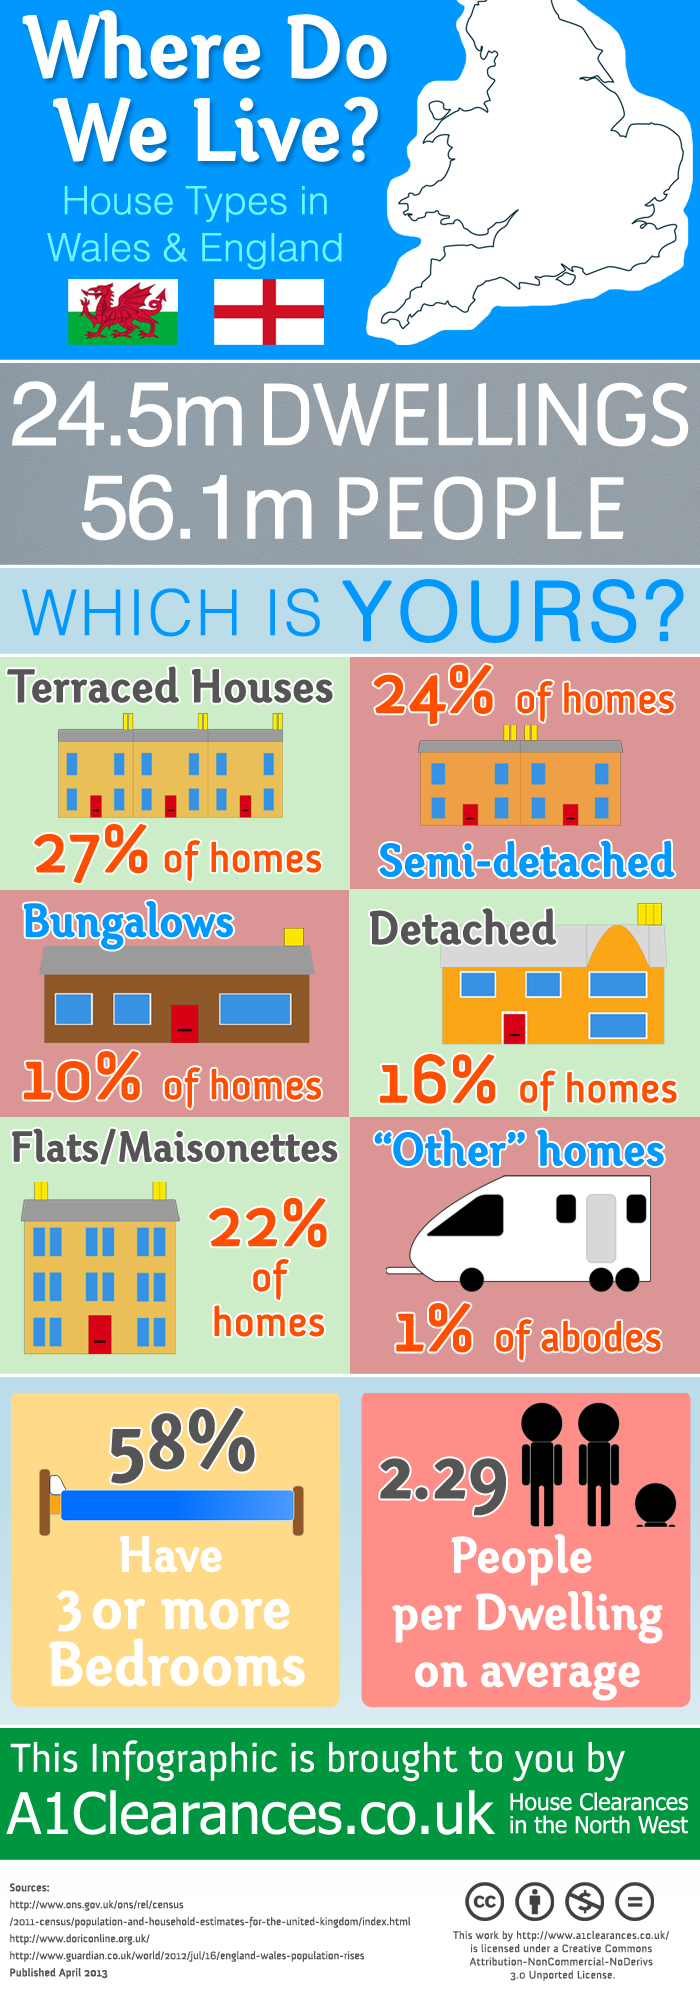 Where Do We Live? House Types in England & Wales